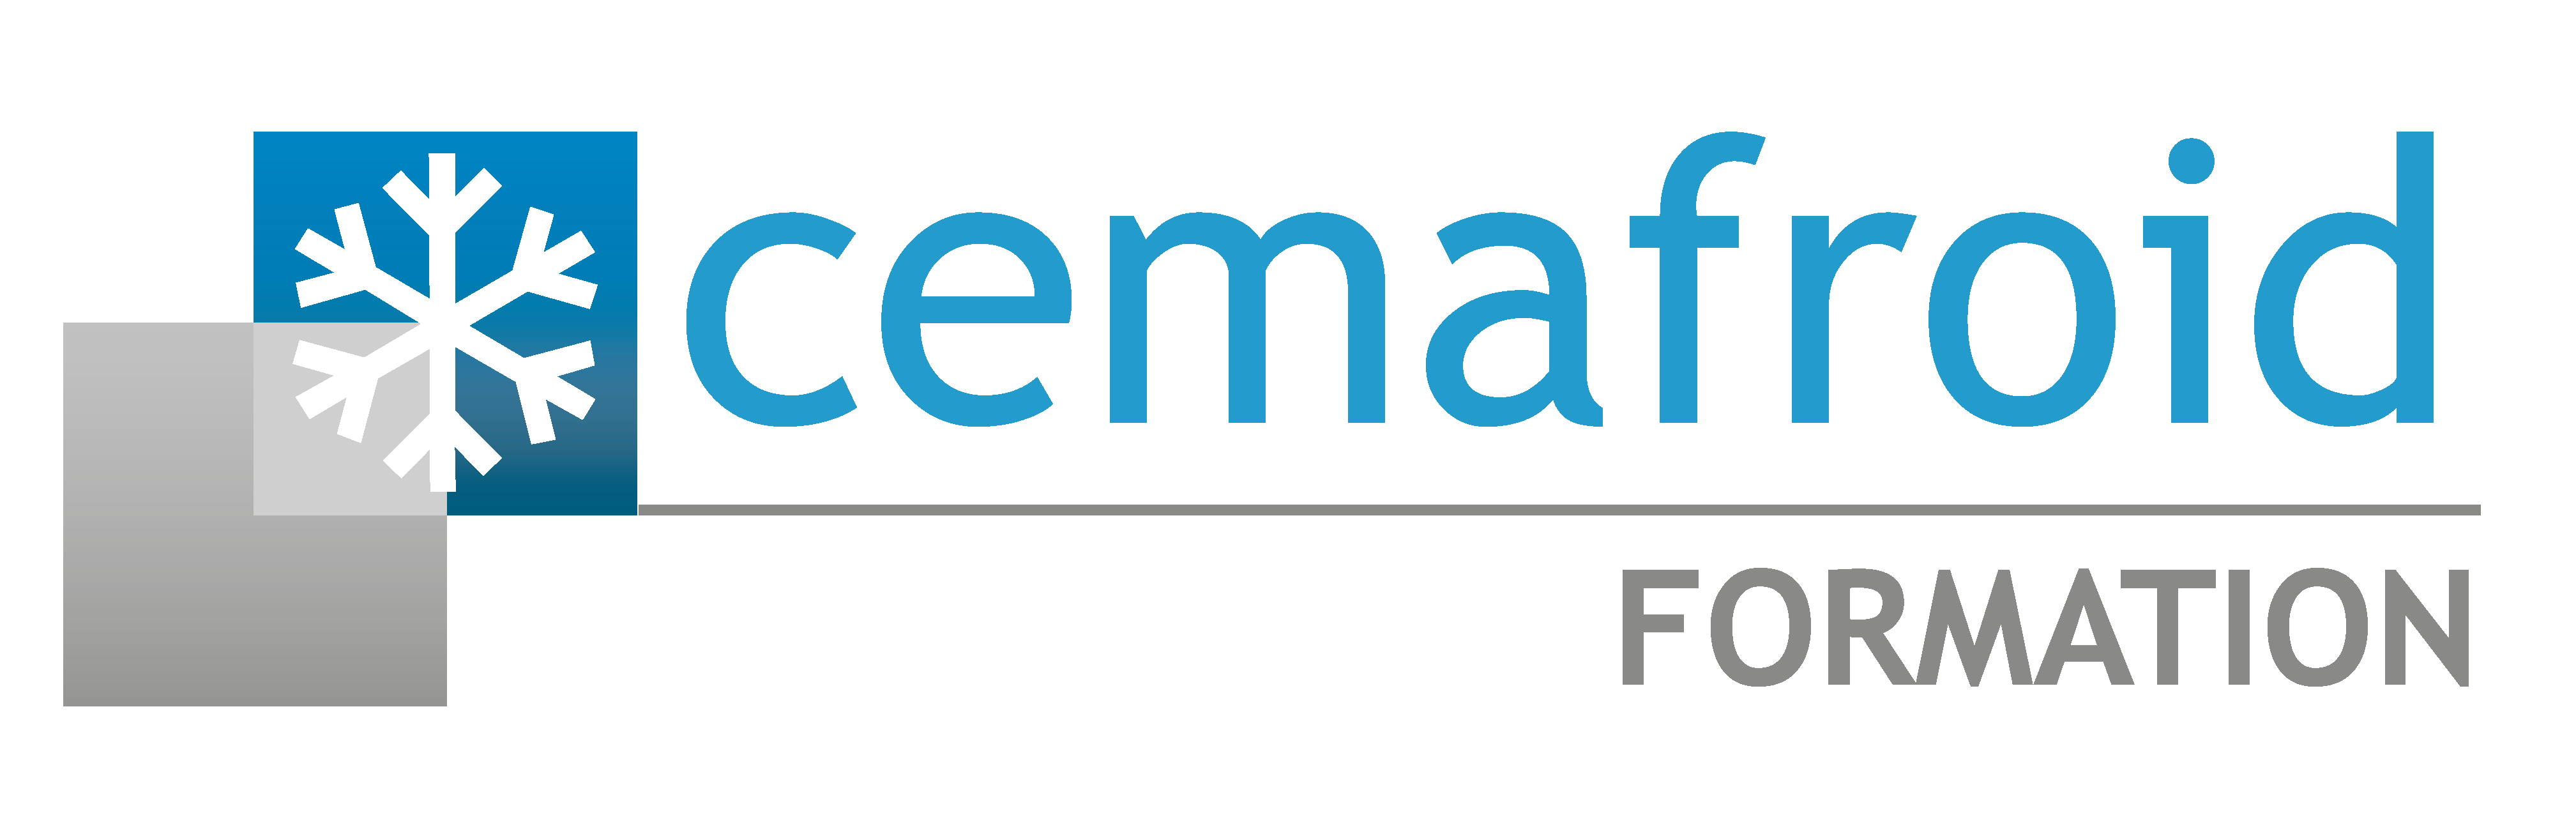 Cemafroid Formation chaine du froid  Alimentaire, Sante, Metrologie, Climatisation